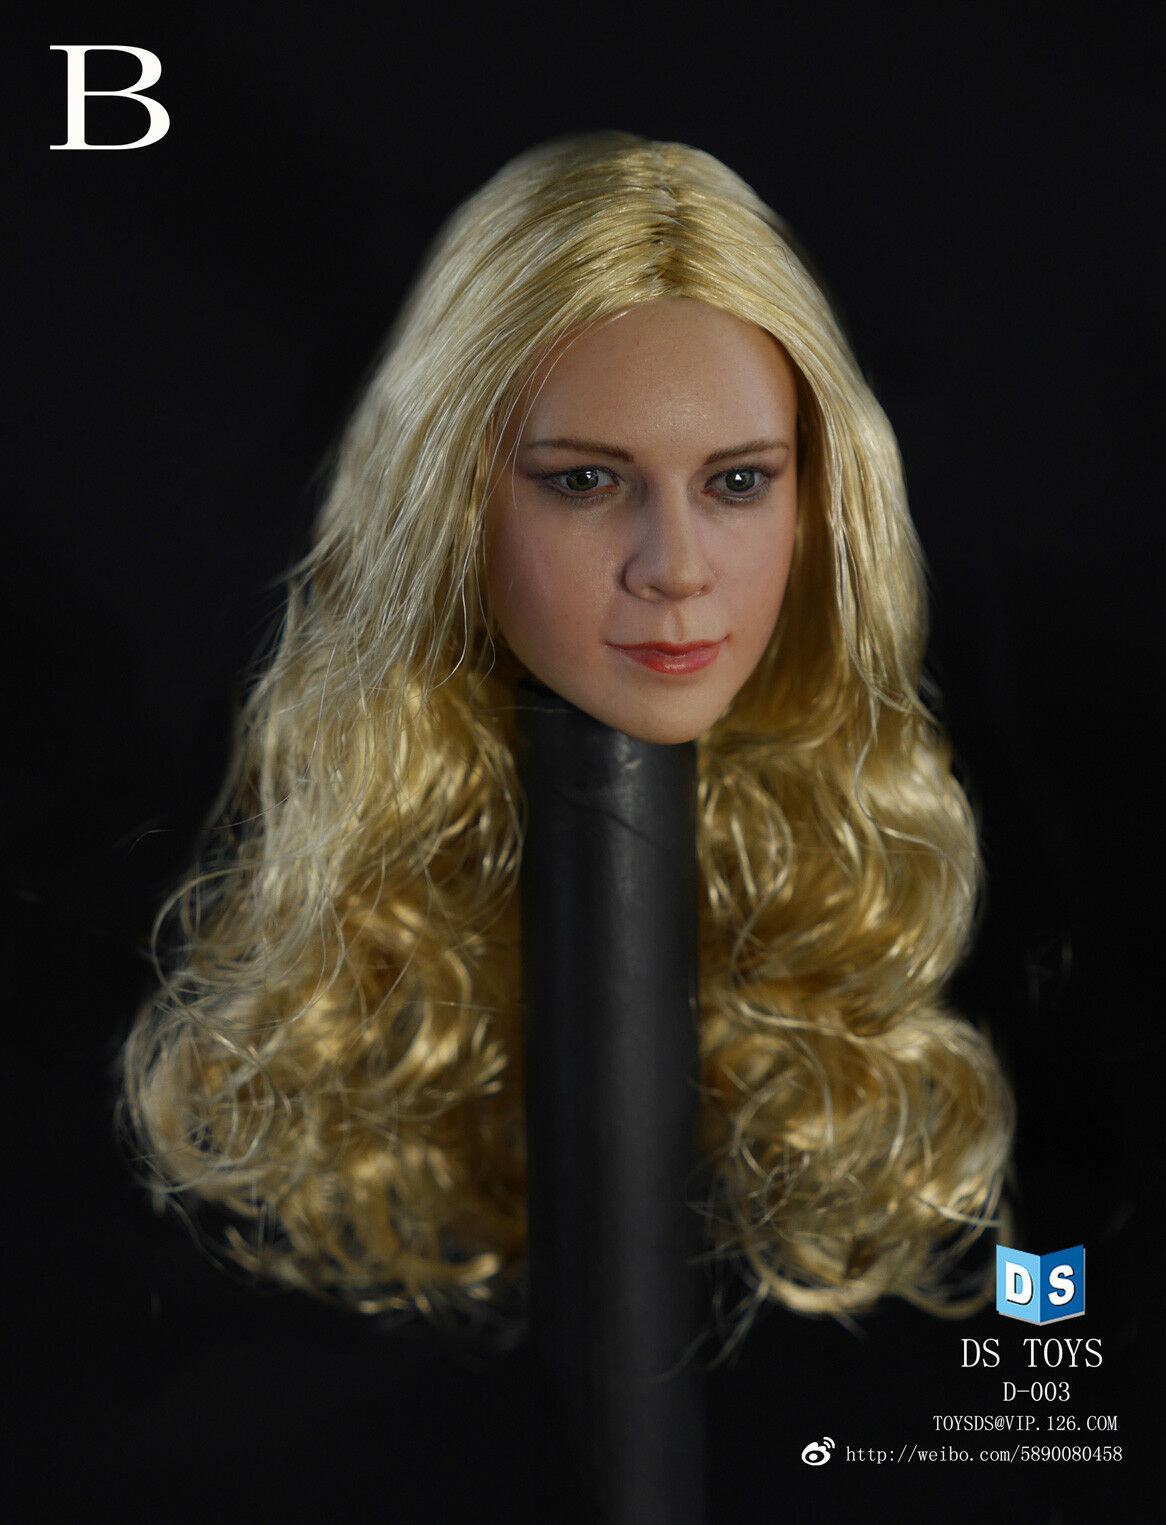 DS Toys Female Figure Head with Long Curly Blonde Hair  D003B